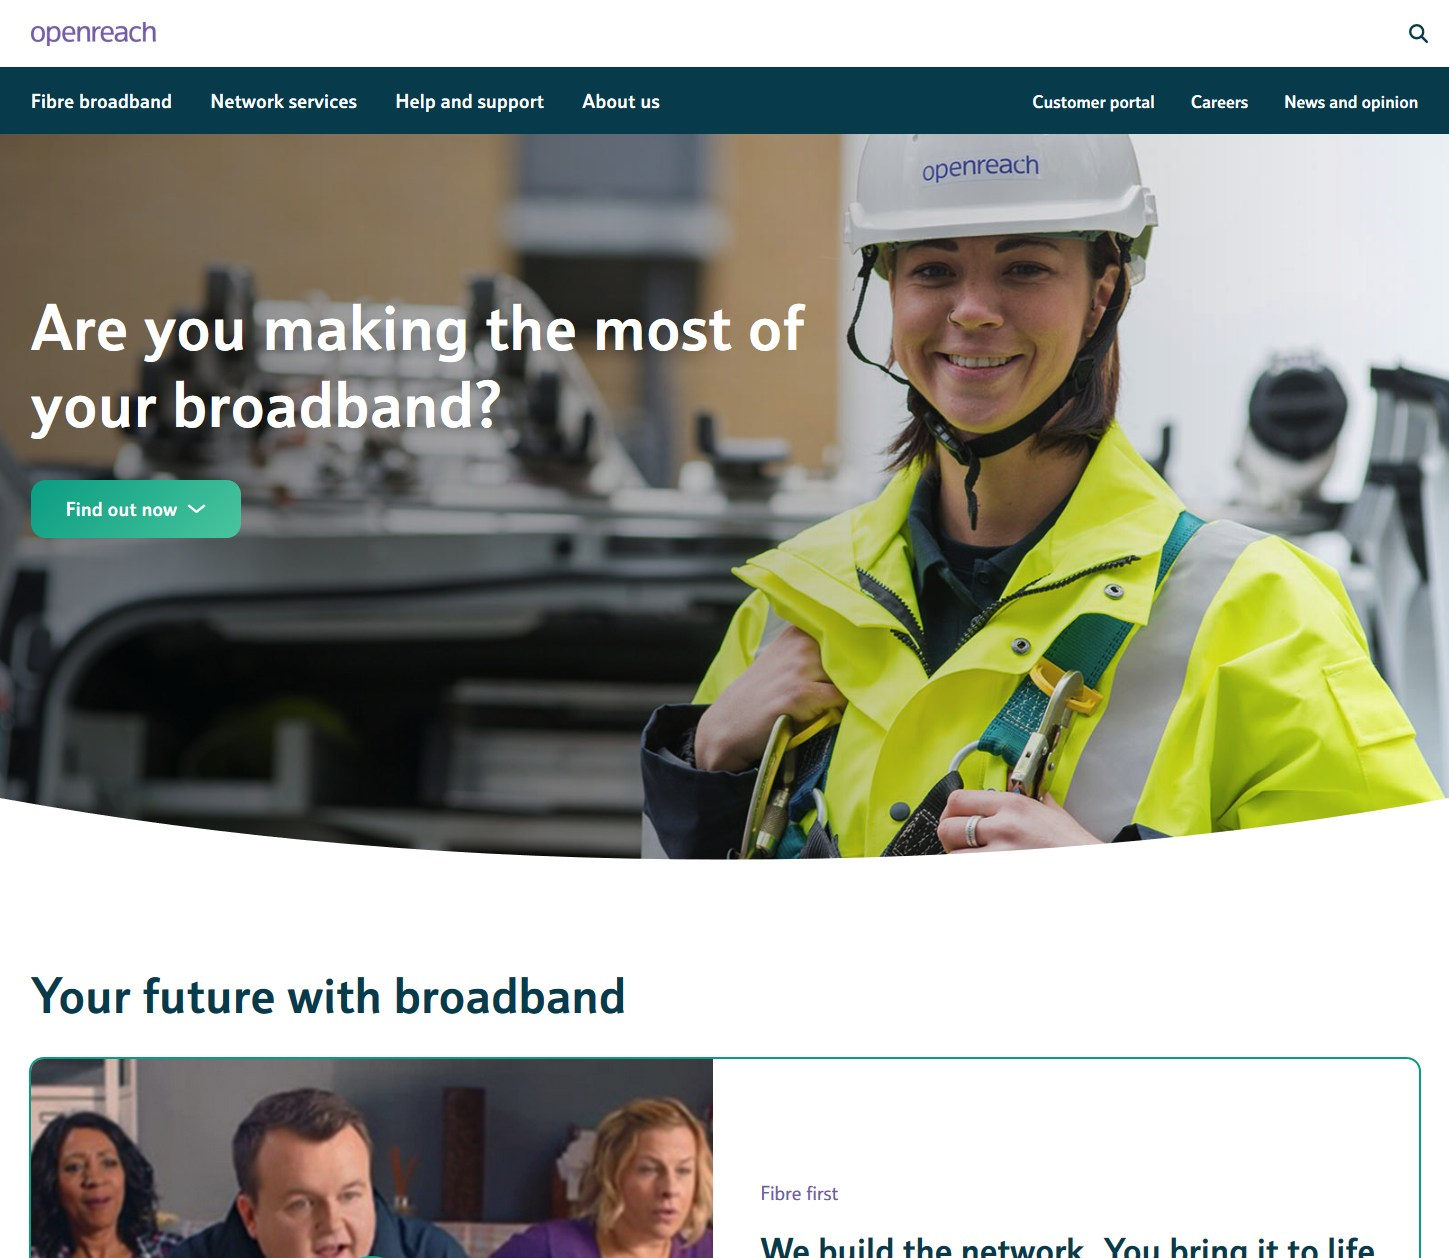 openreach_website_2019